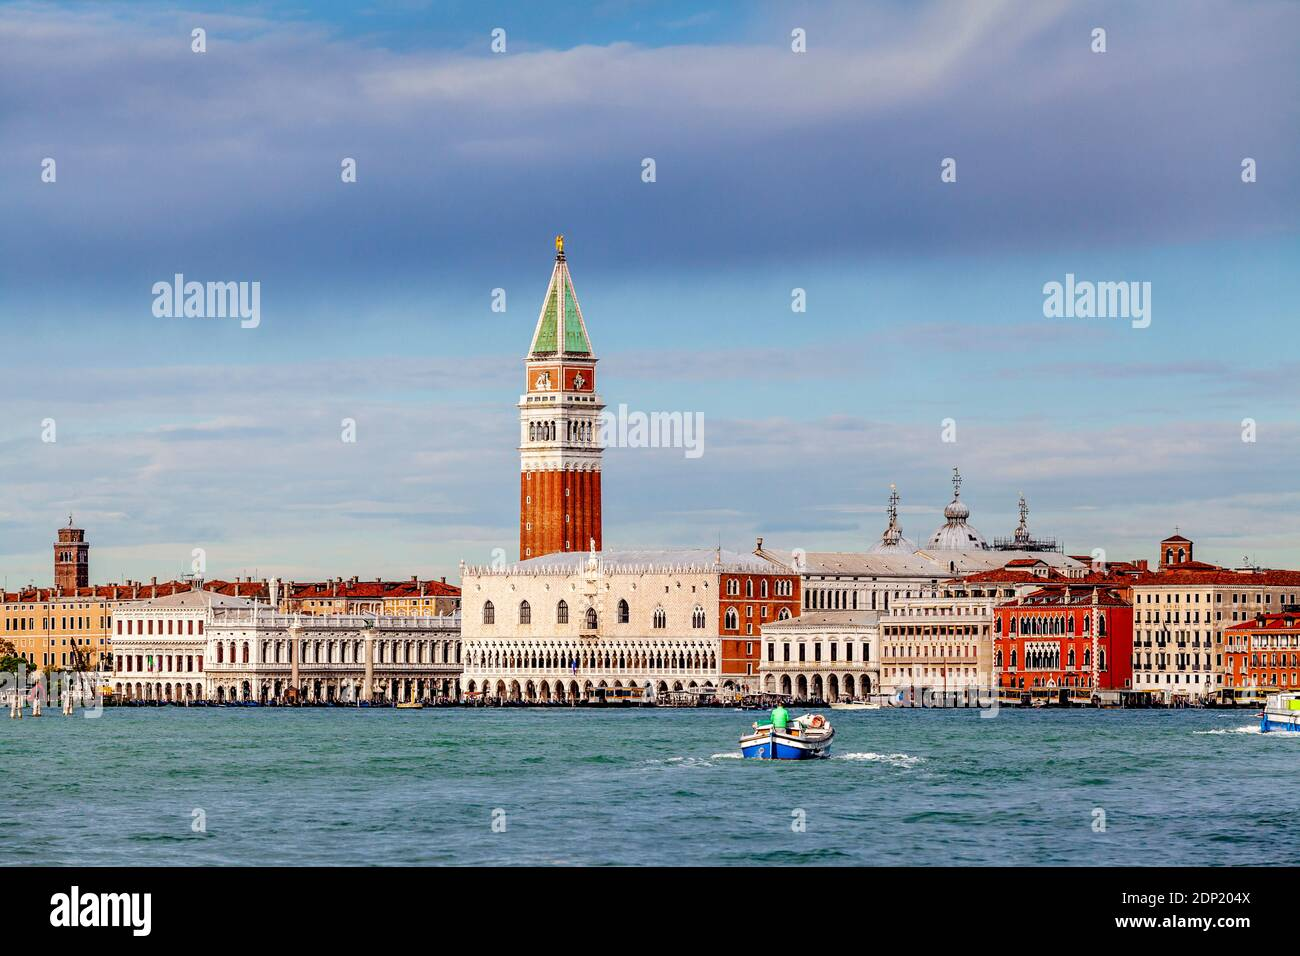 A View Of The Historic Waterfront Buildings, Venice, Italy. Stock Photo